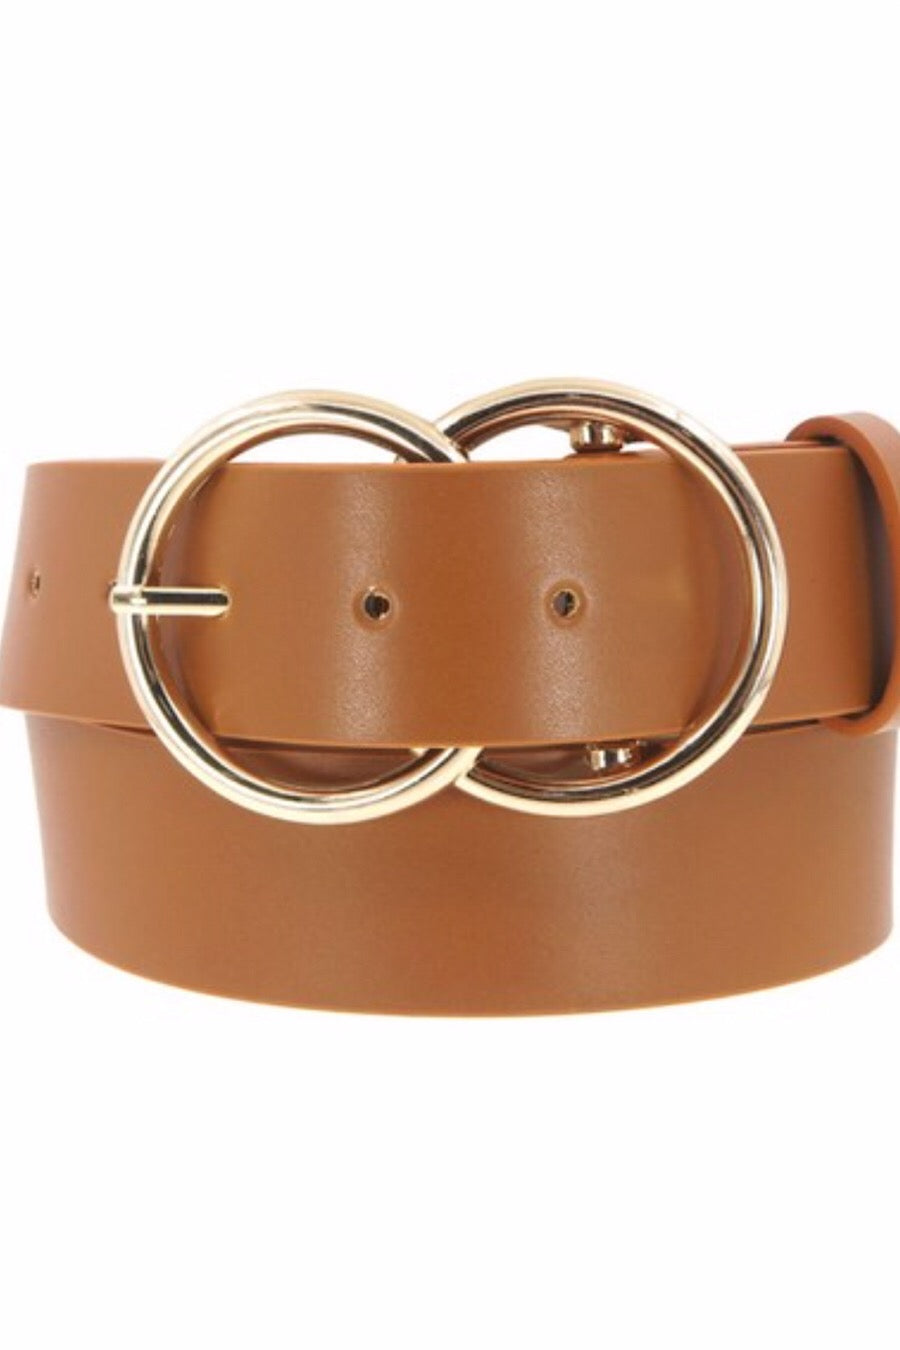 Vegan Leather Double Ring Belt in Tan